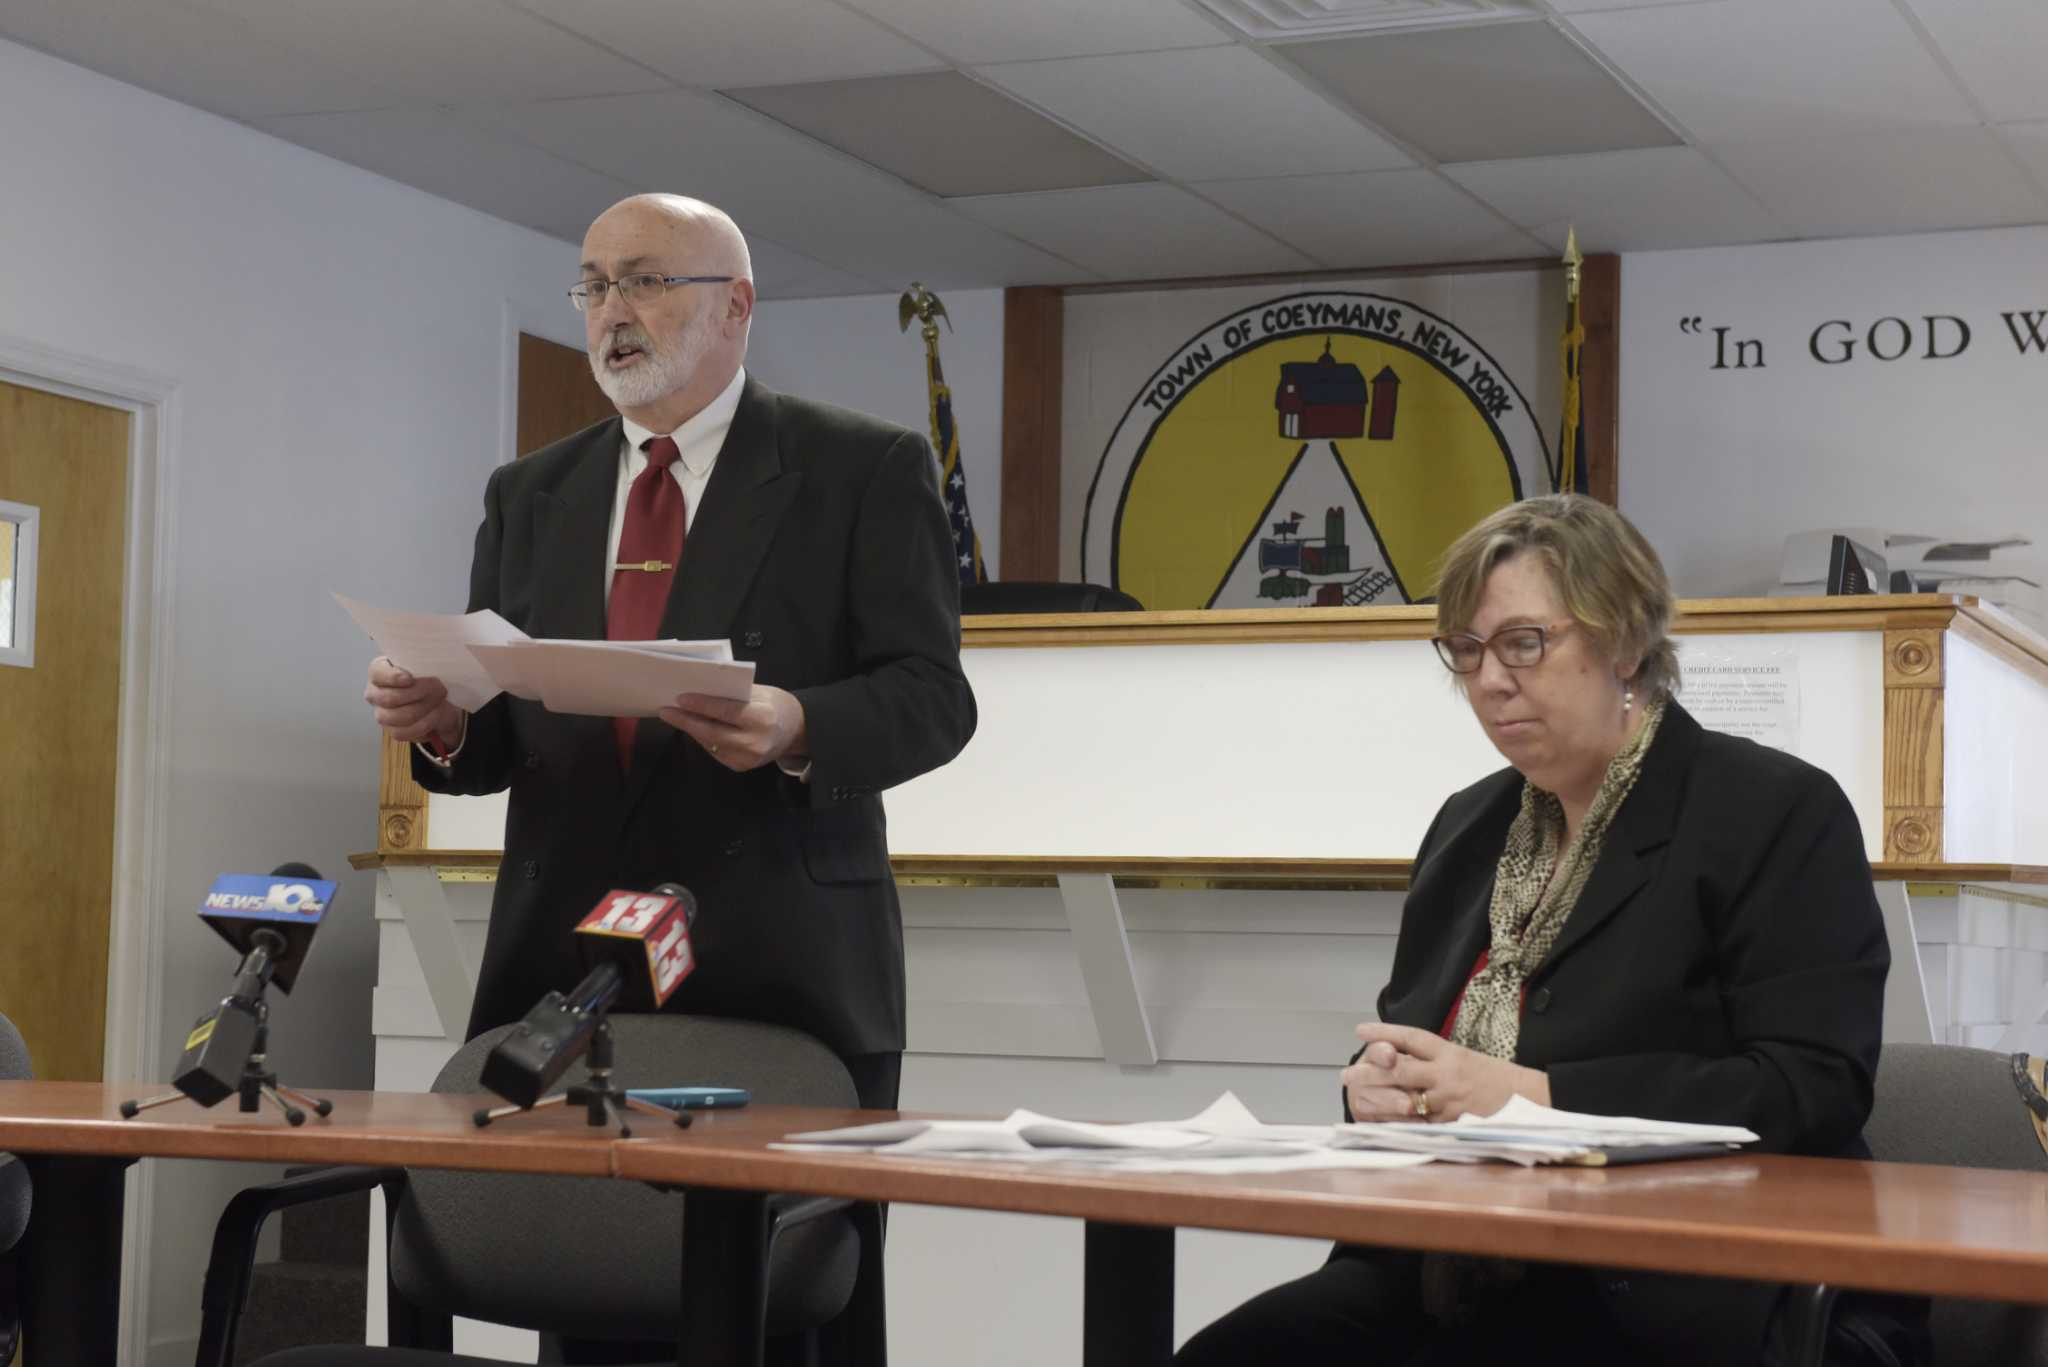 Dems try to protect Clean Air Law in Coeymans